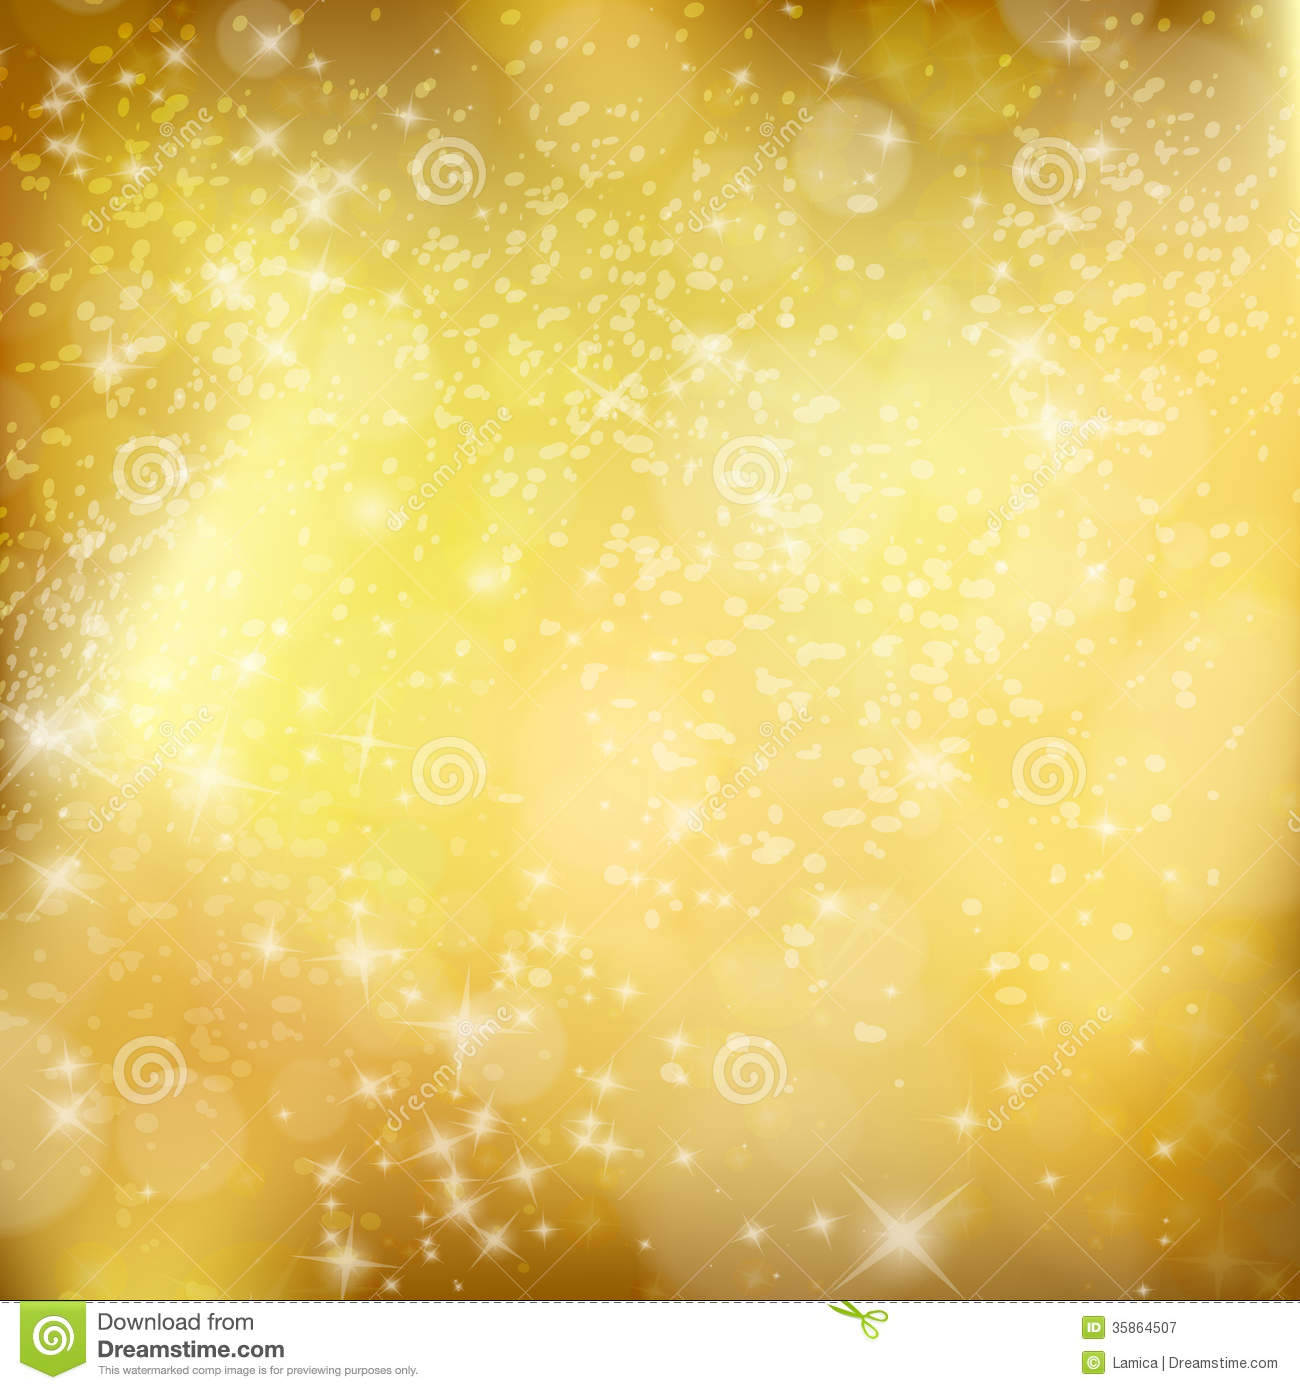 Golden Xmas Background Abstract Winter Design With Stars